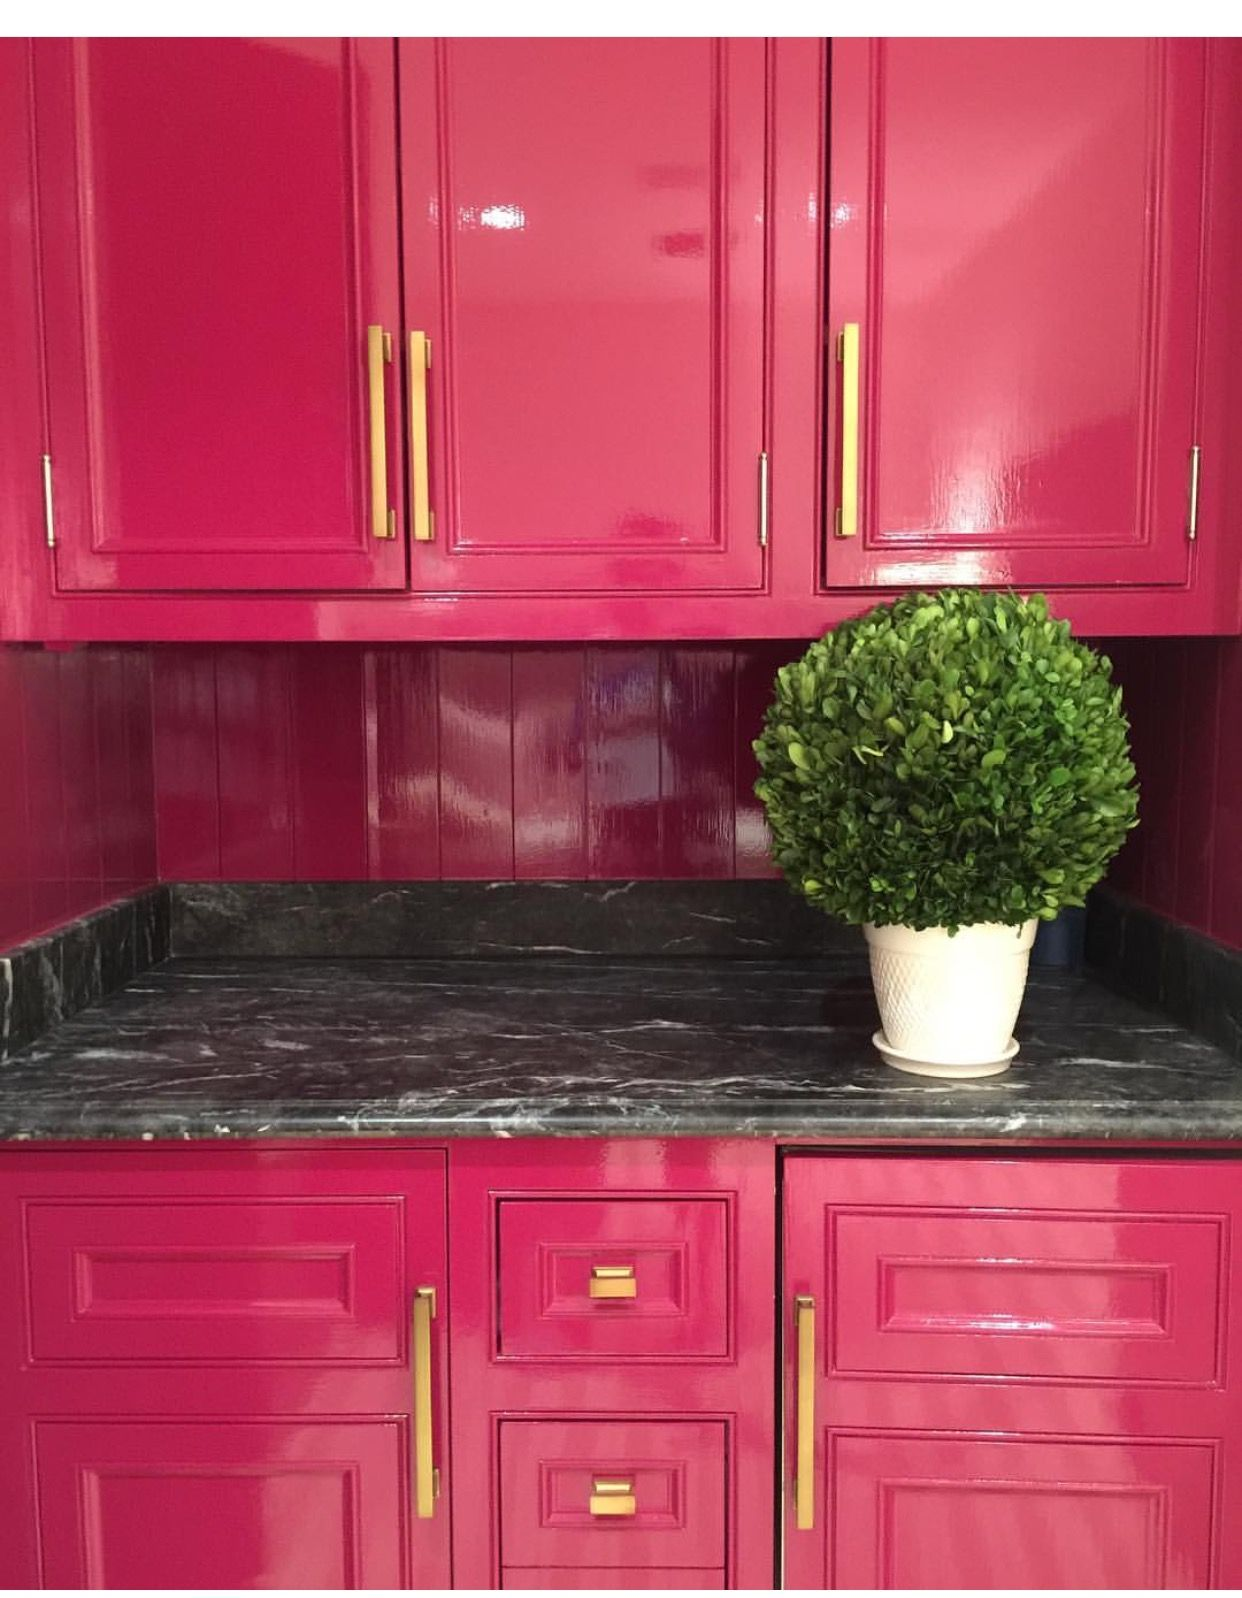 kirsten kelli hot pink lacquer cabinets pink kitchen cabinets hot pink kitchen painted on kitchen decor pink id=36721